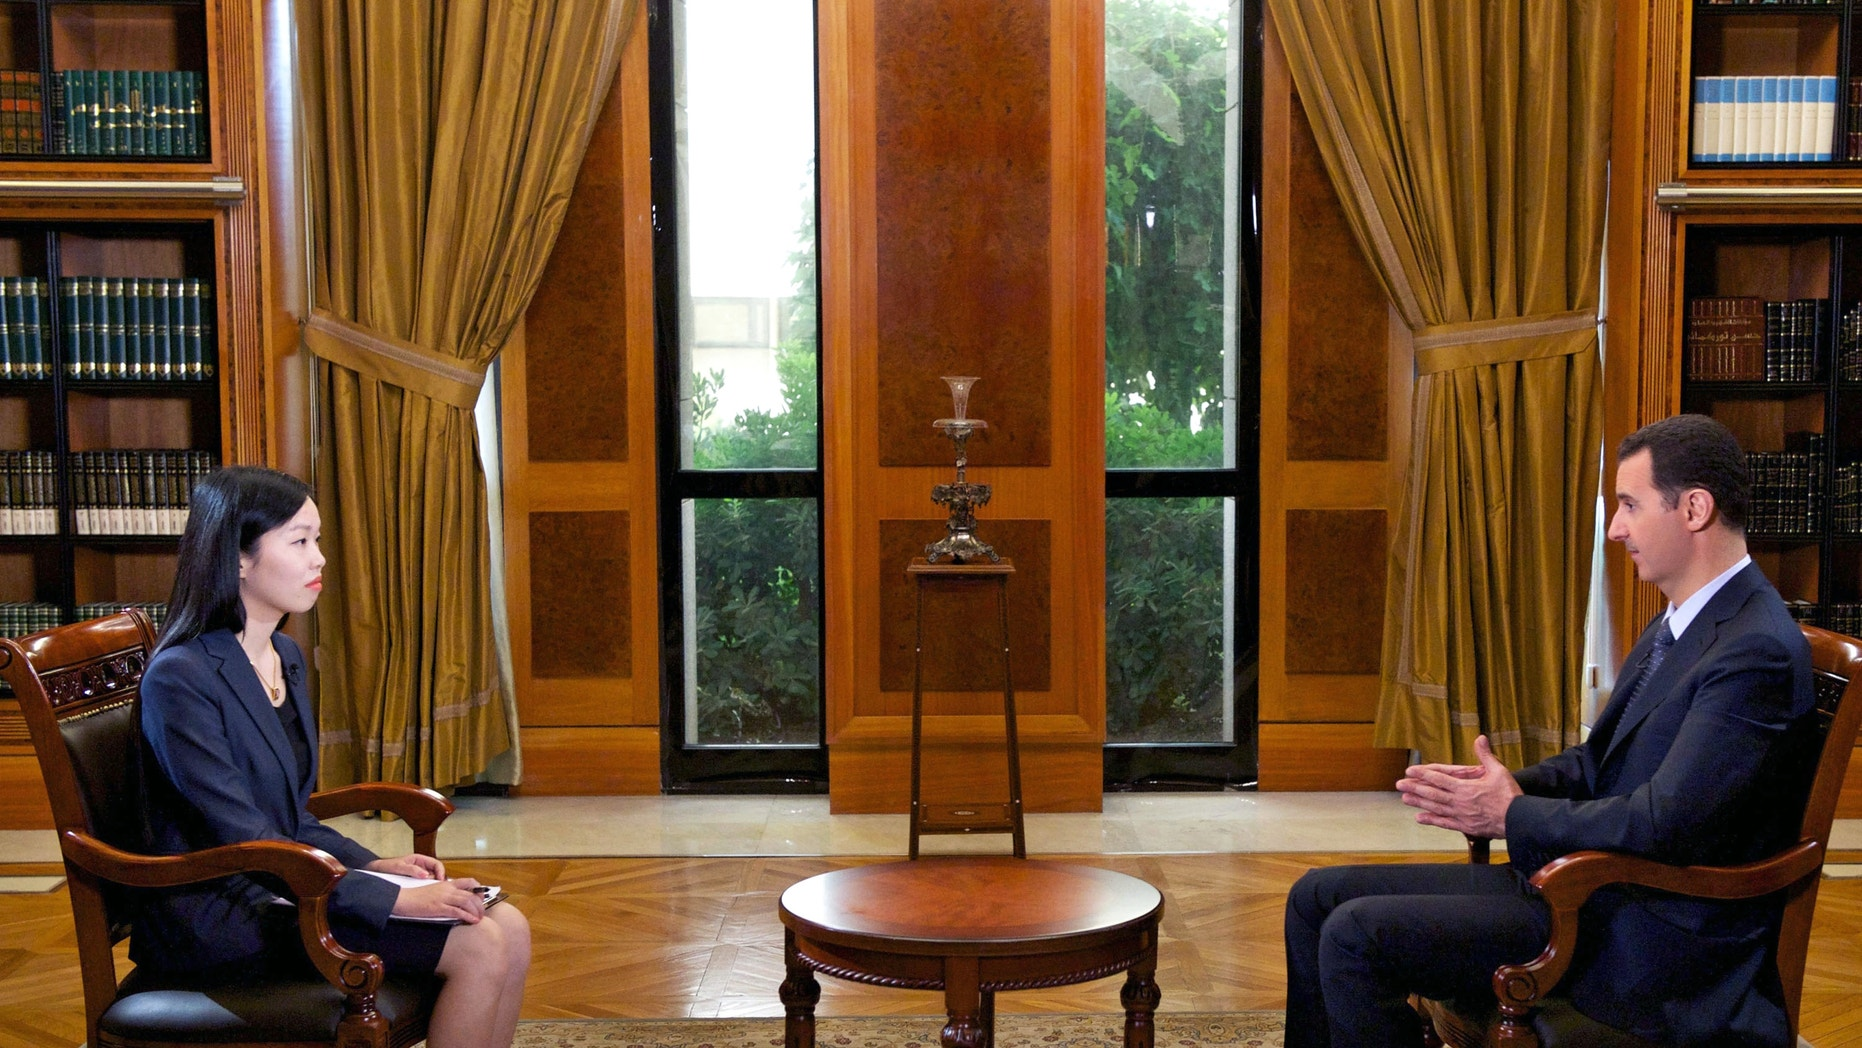 Sept. 23, 2013 - Syrian President Bashar Assad speaks during an interview with Chinese state CCTV, in Damascus, Syria.  Assad said his government will allow international experts access to its chemical weapons sites but cautioned that rebels might block them from reaching some of the locations.